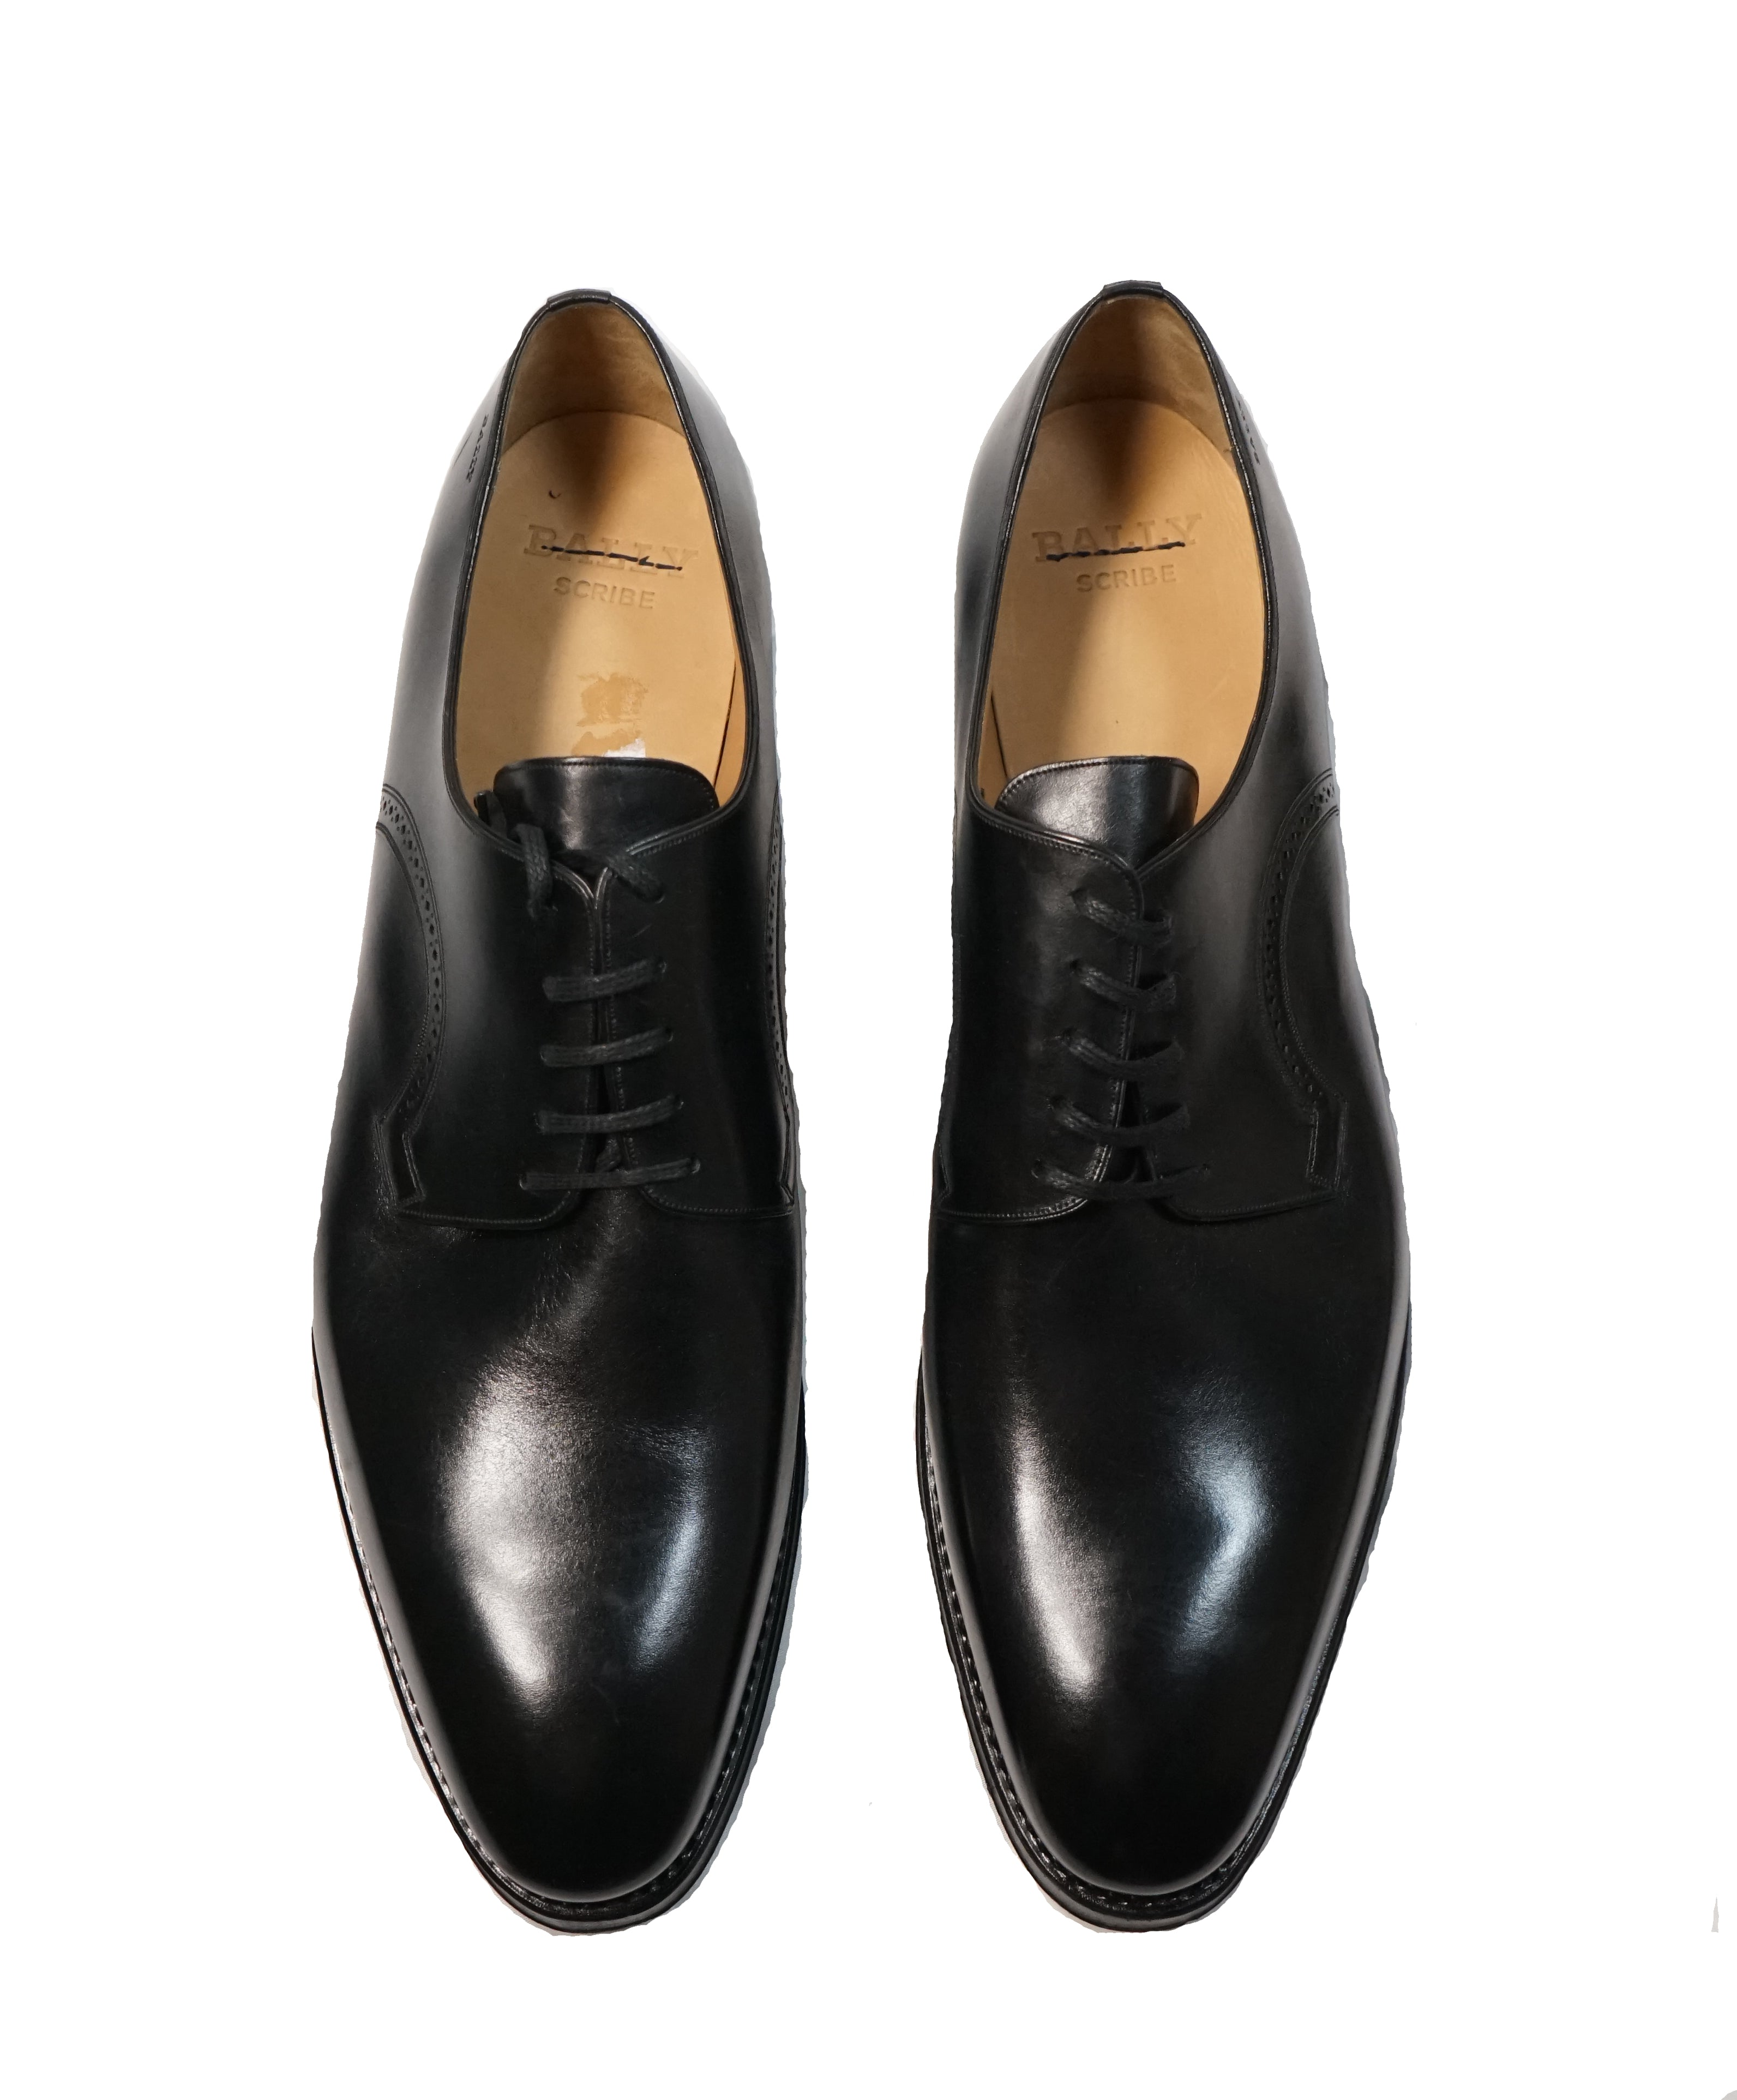 "BALLY - ""SCRIBE"" Goodyear Welt Oxfords - 13"